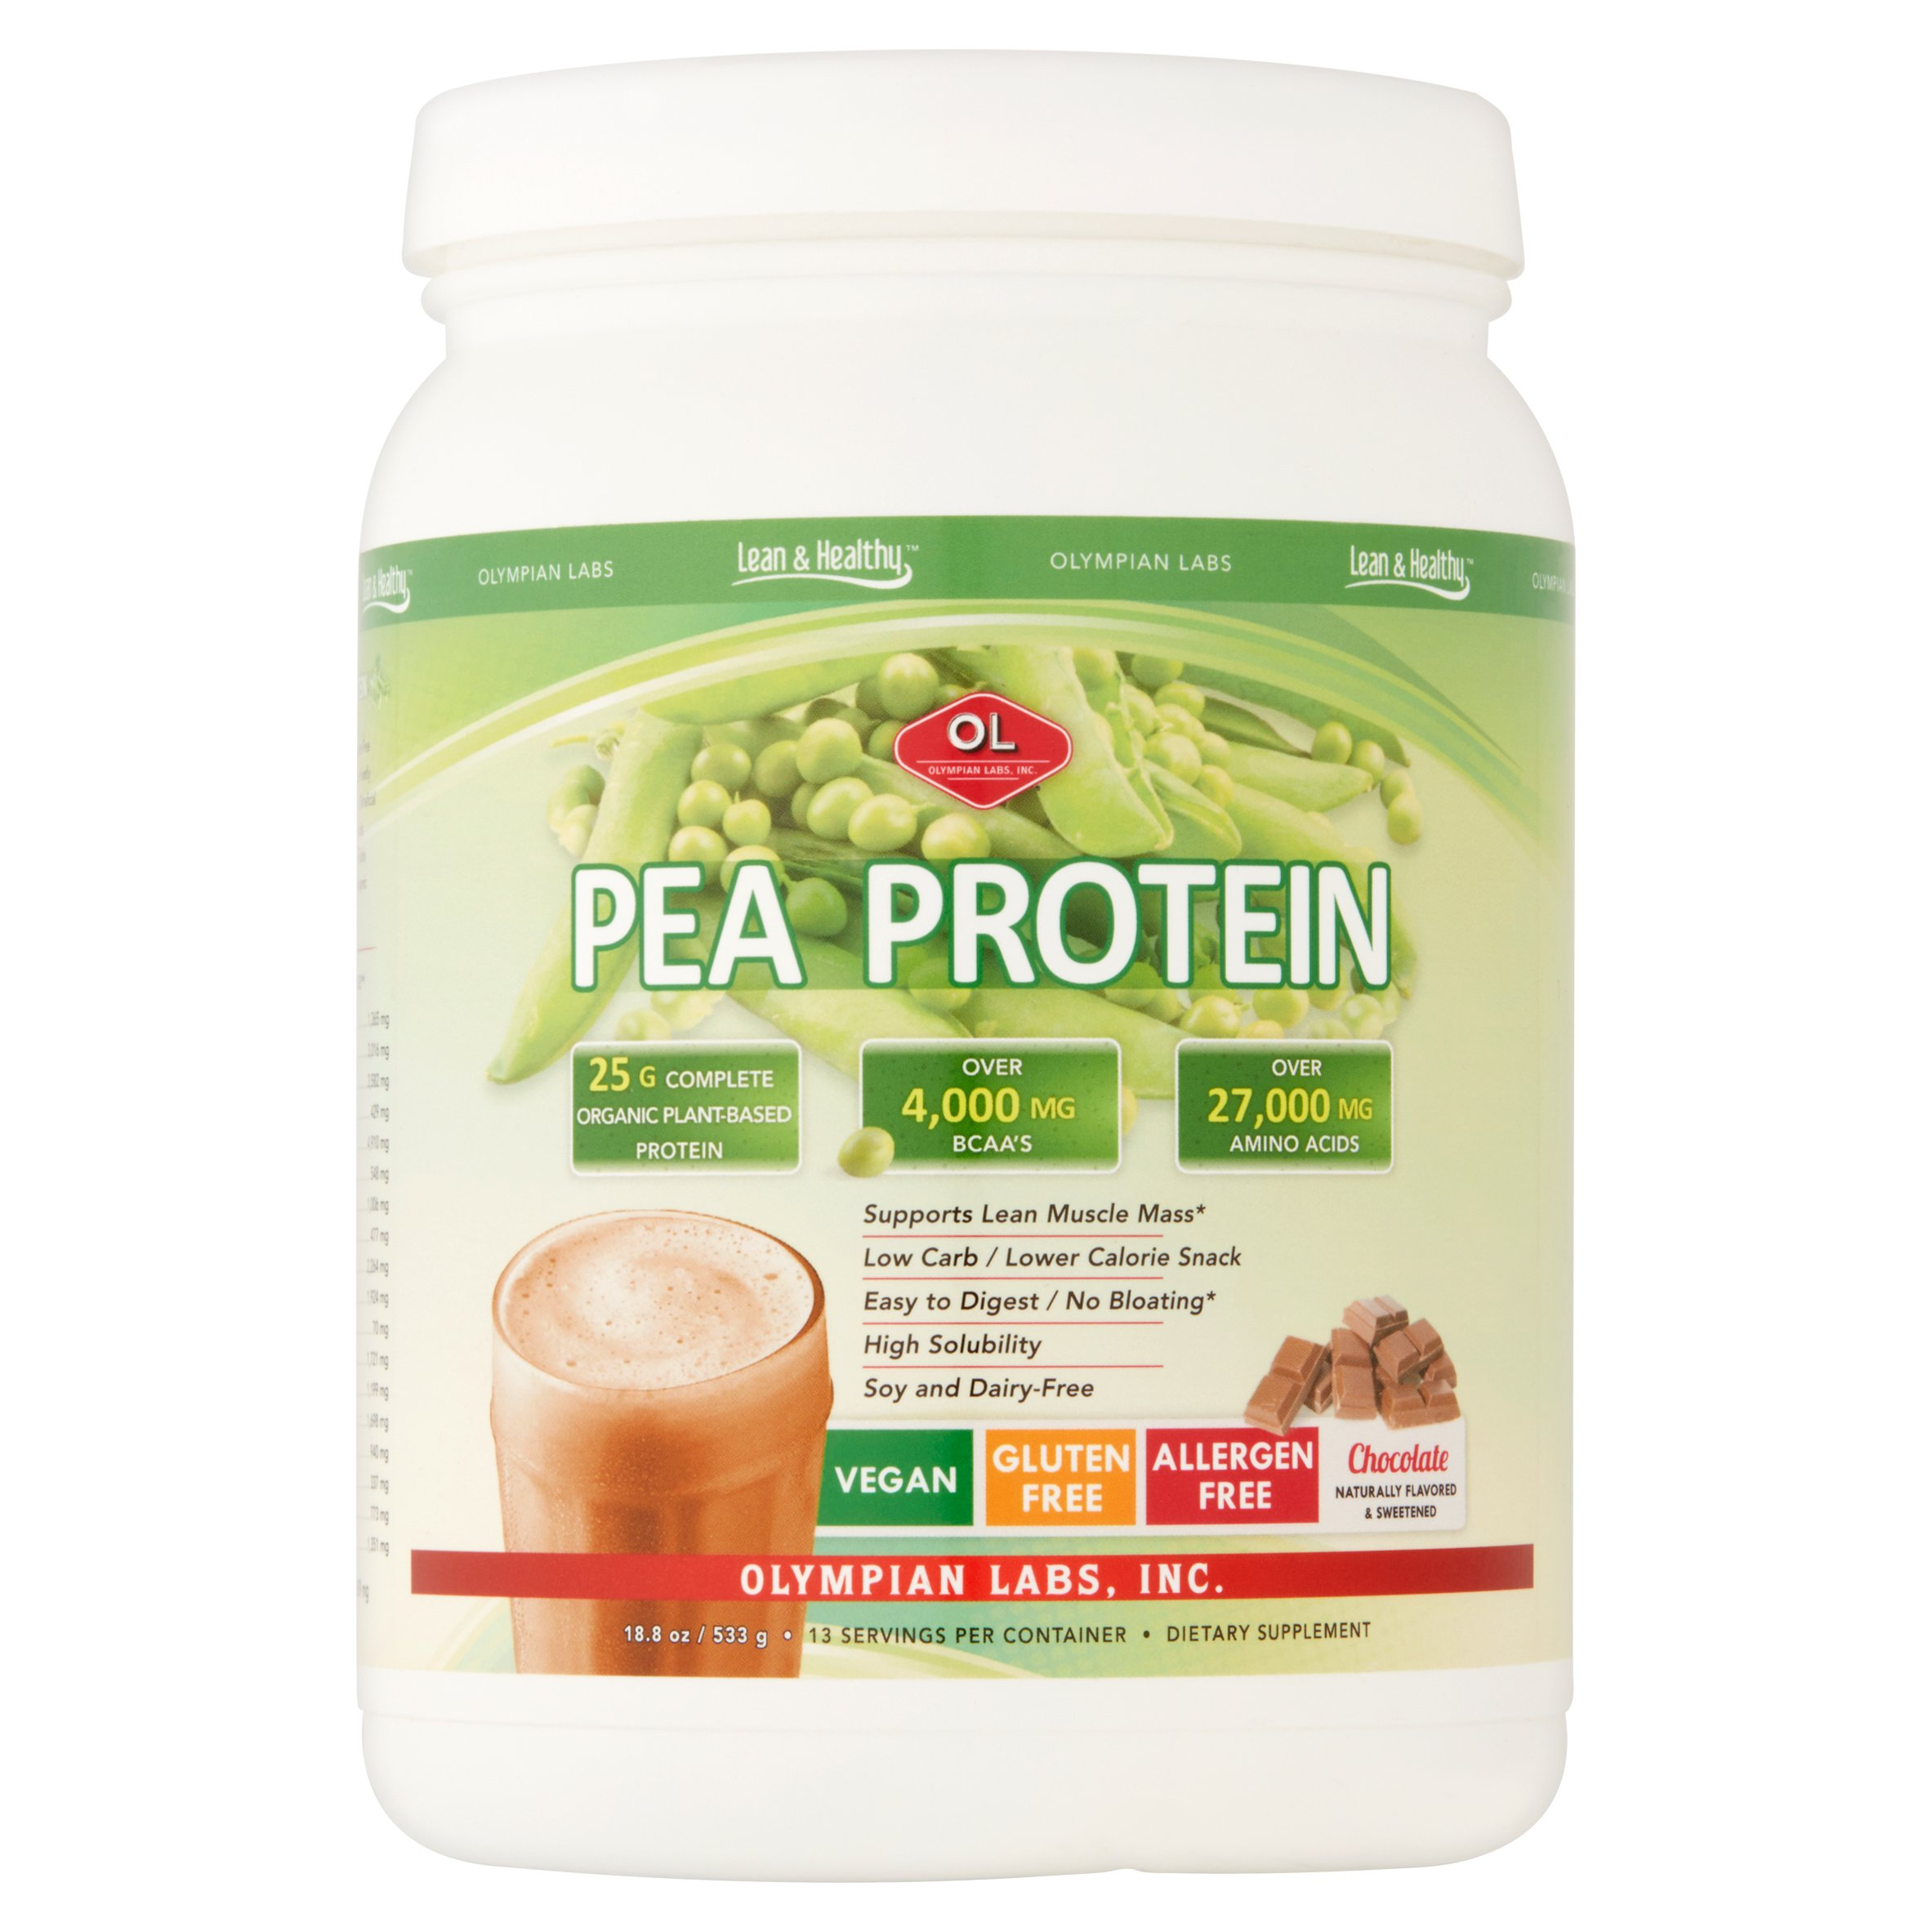 Olympian Labs Pea Protein Powder, Chocolate, 25g Protein, 1.1 Lb